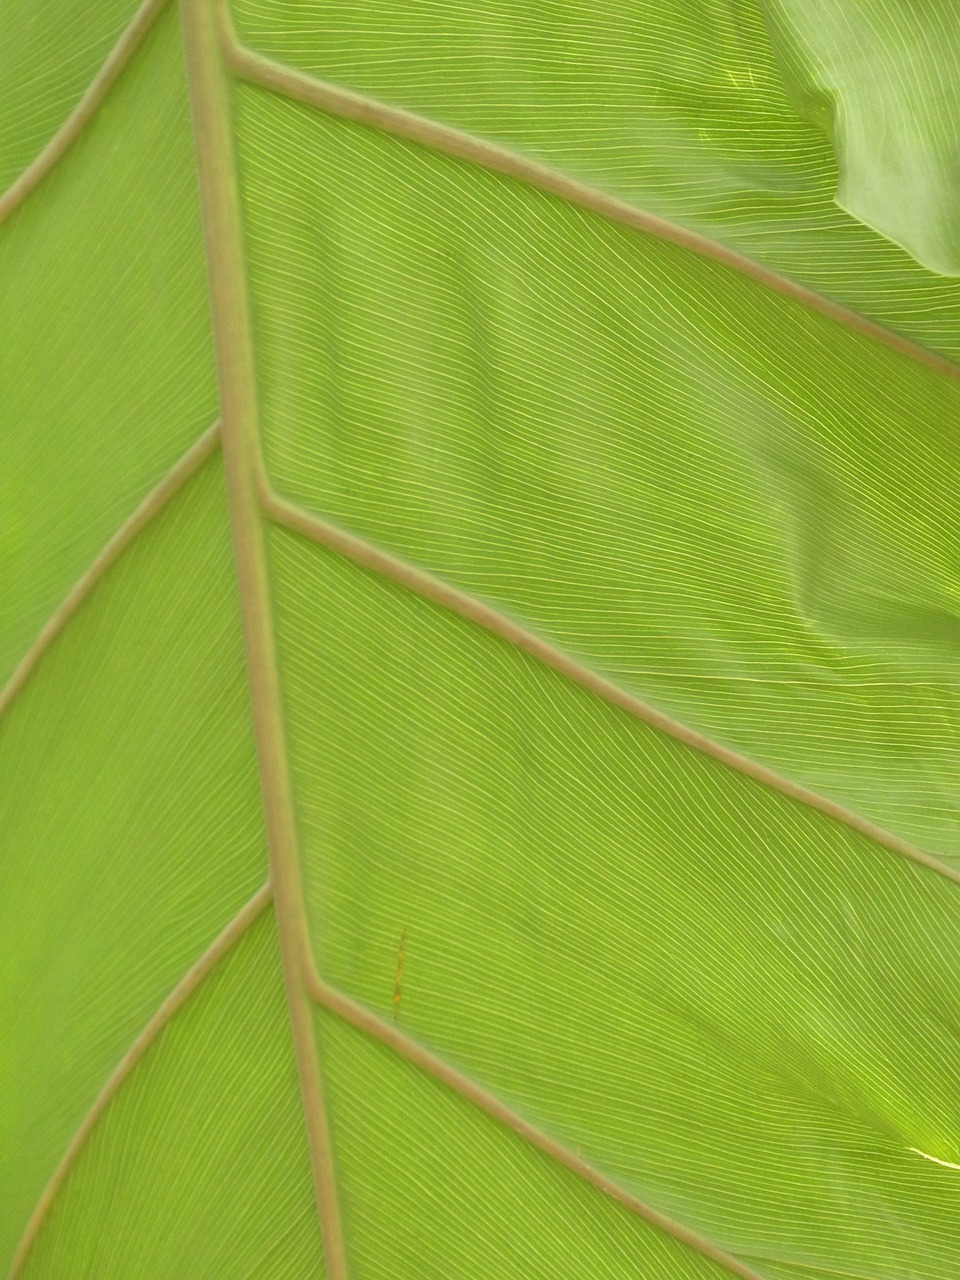 leaf veins leaf large free photo